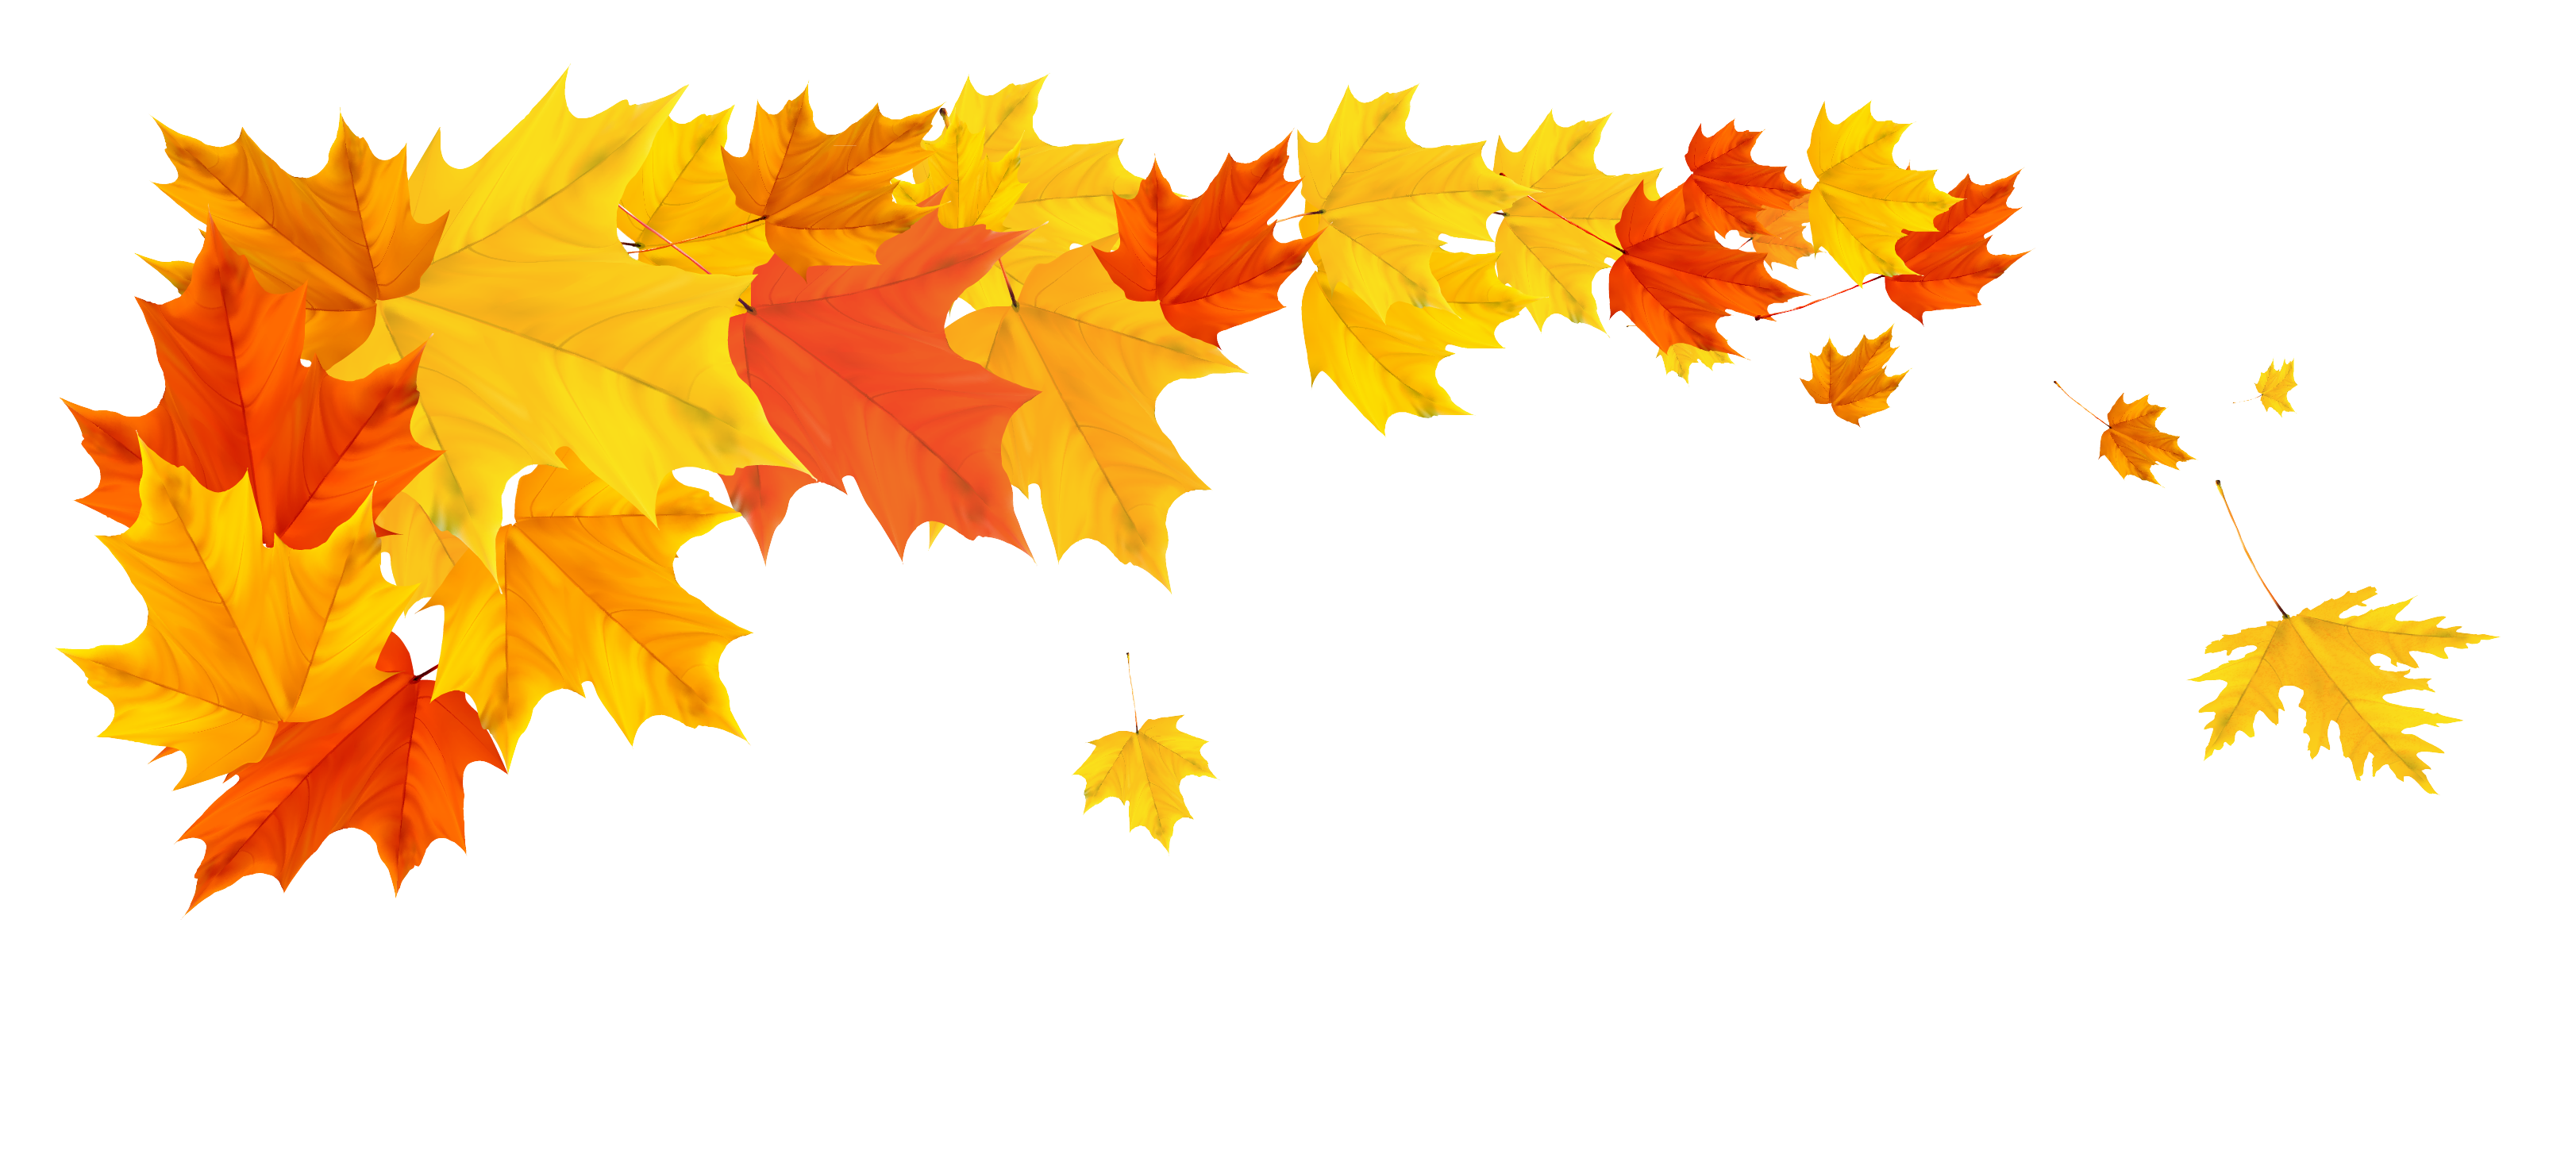 vector black and white download Fall background clipart. Orange leafs png picture